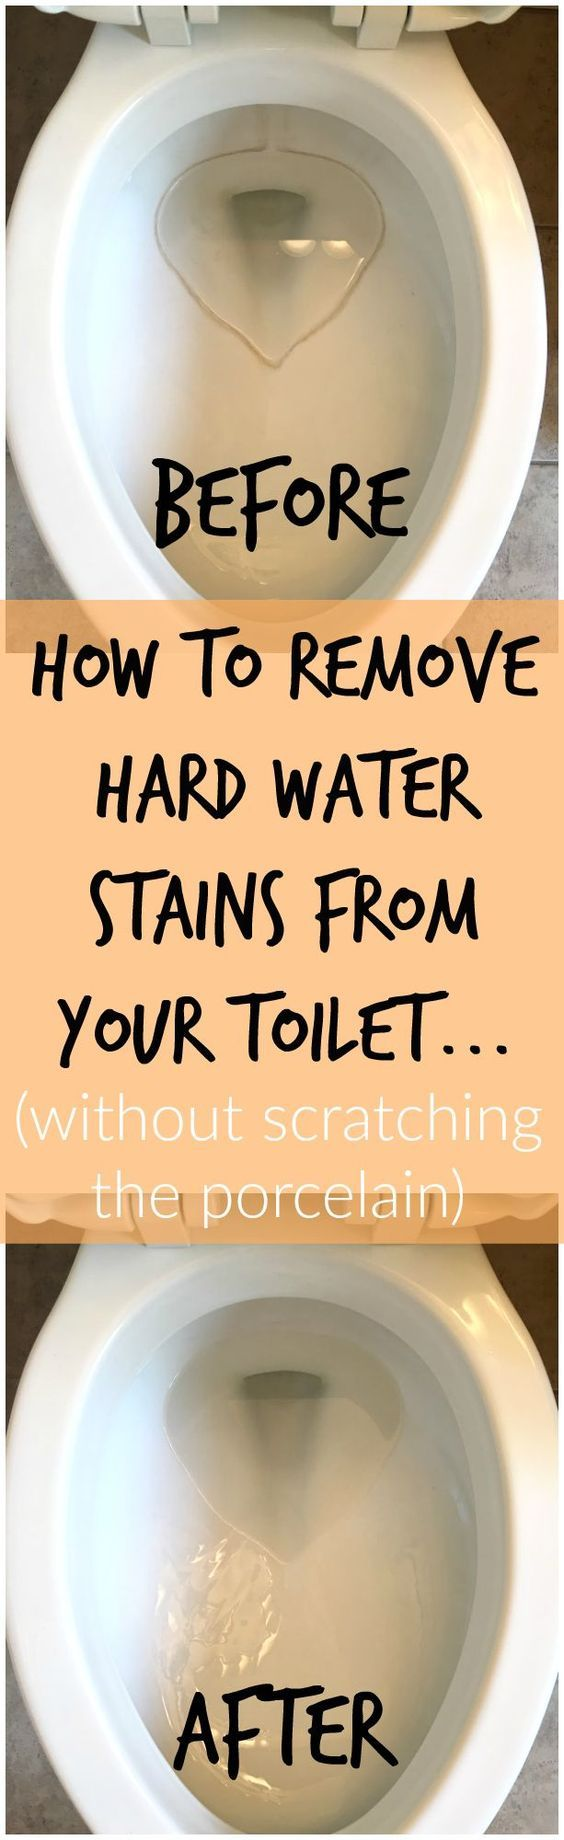 How to Remove Hard Water Stains from Toilets  Hard water stains